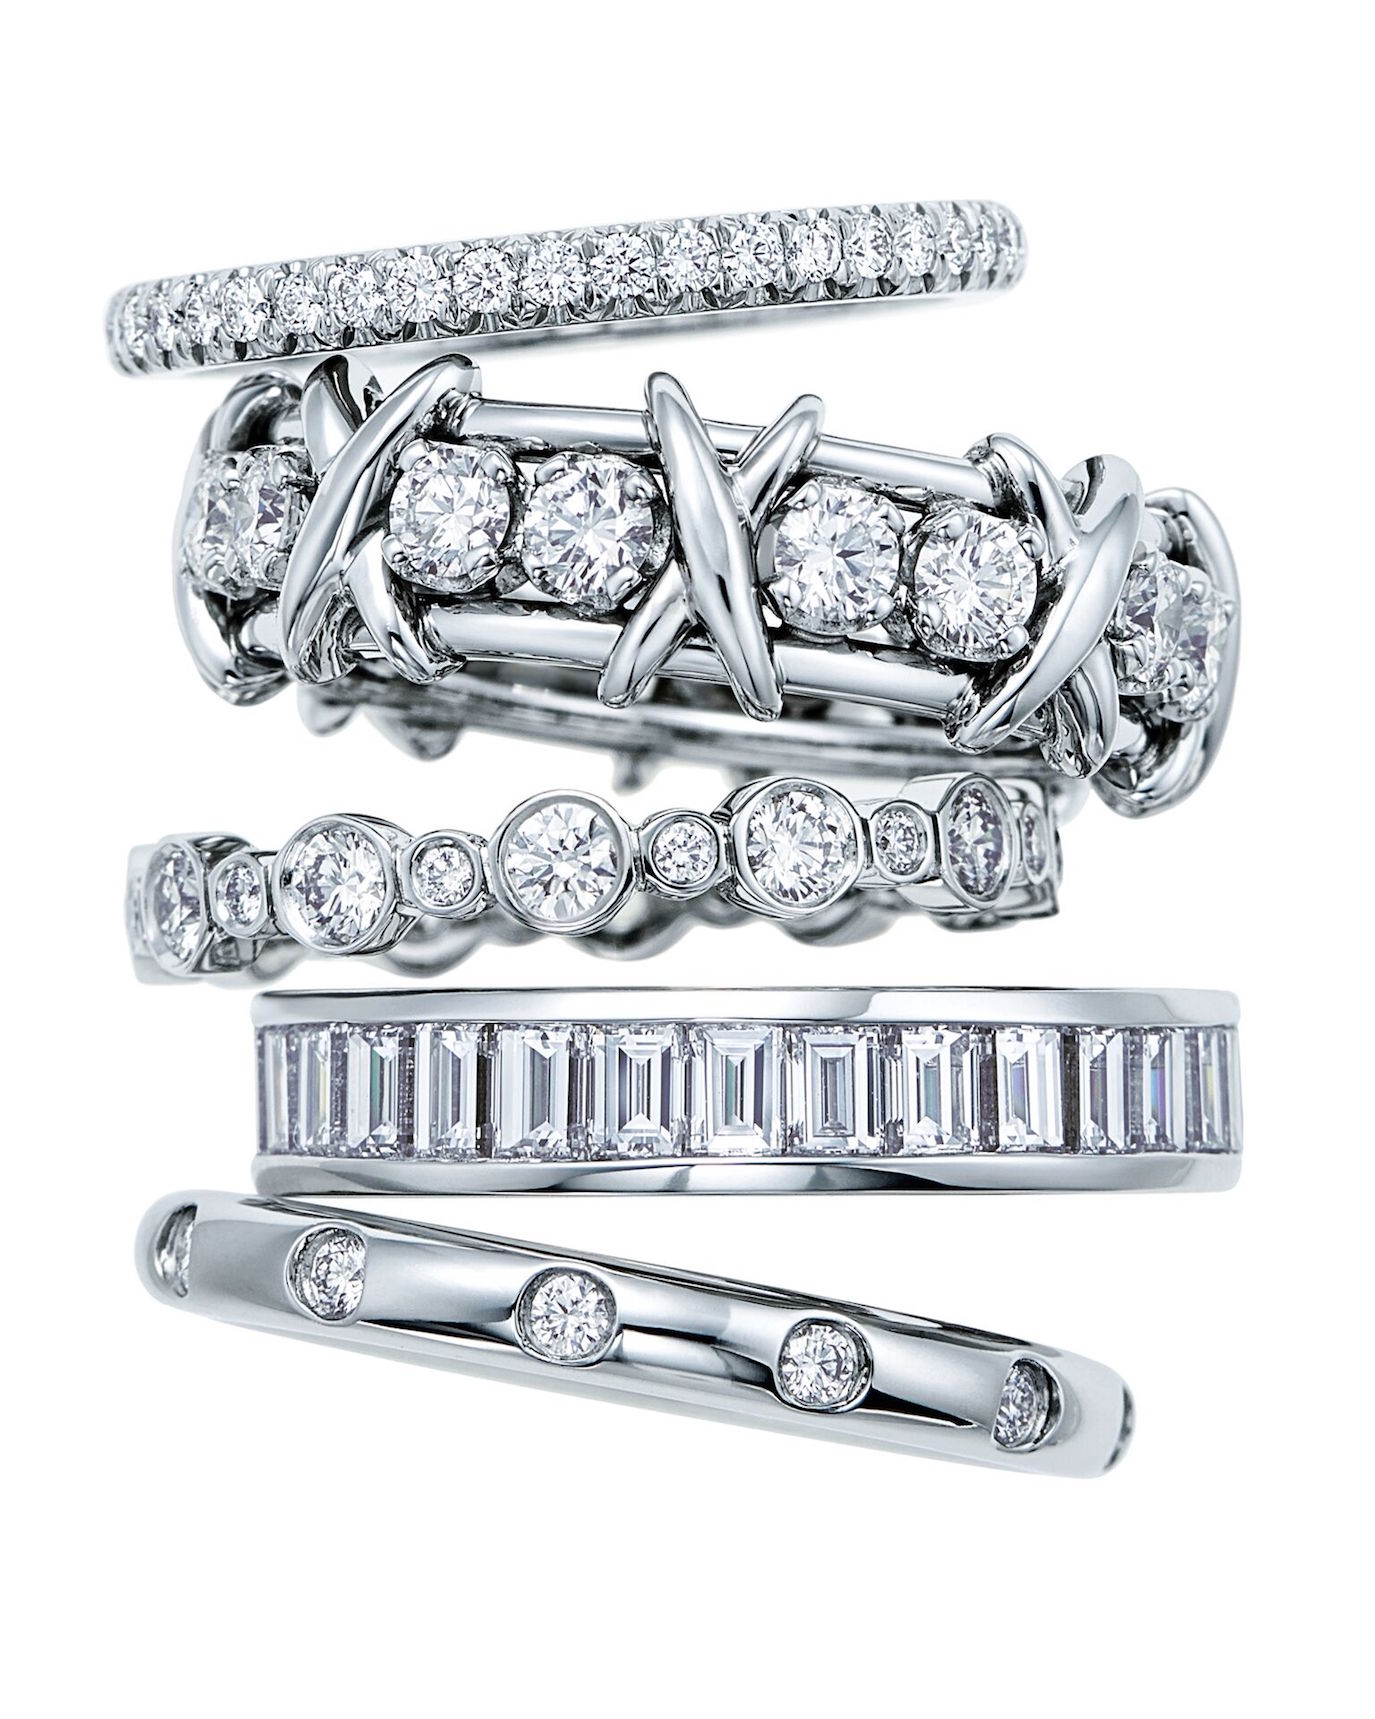 Top to bottom: Bands in platinum with diamonds: Tiffany Soleste; Tiffany & Co. Schlumberger Sixteen Stone; Tiffany Jazz Channel set; and Tiffany Bezet